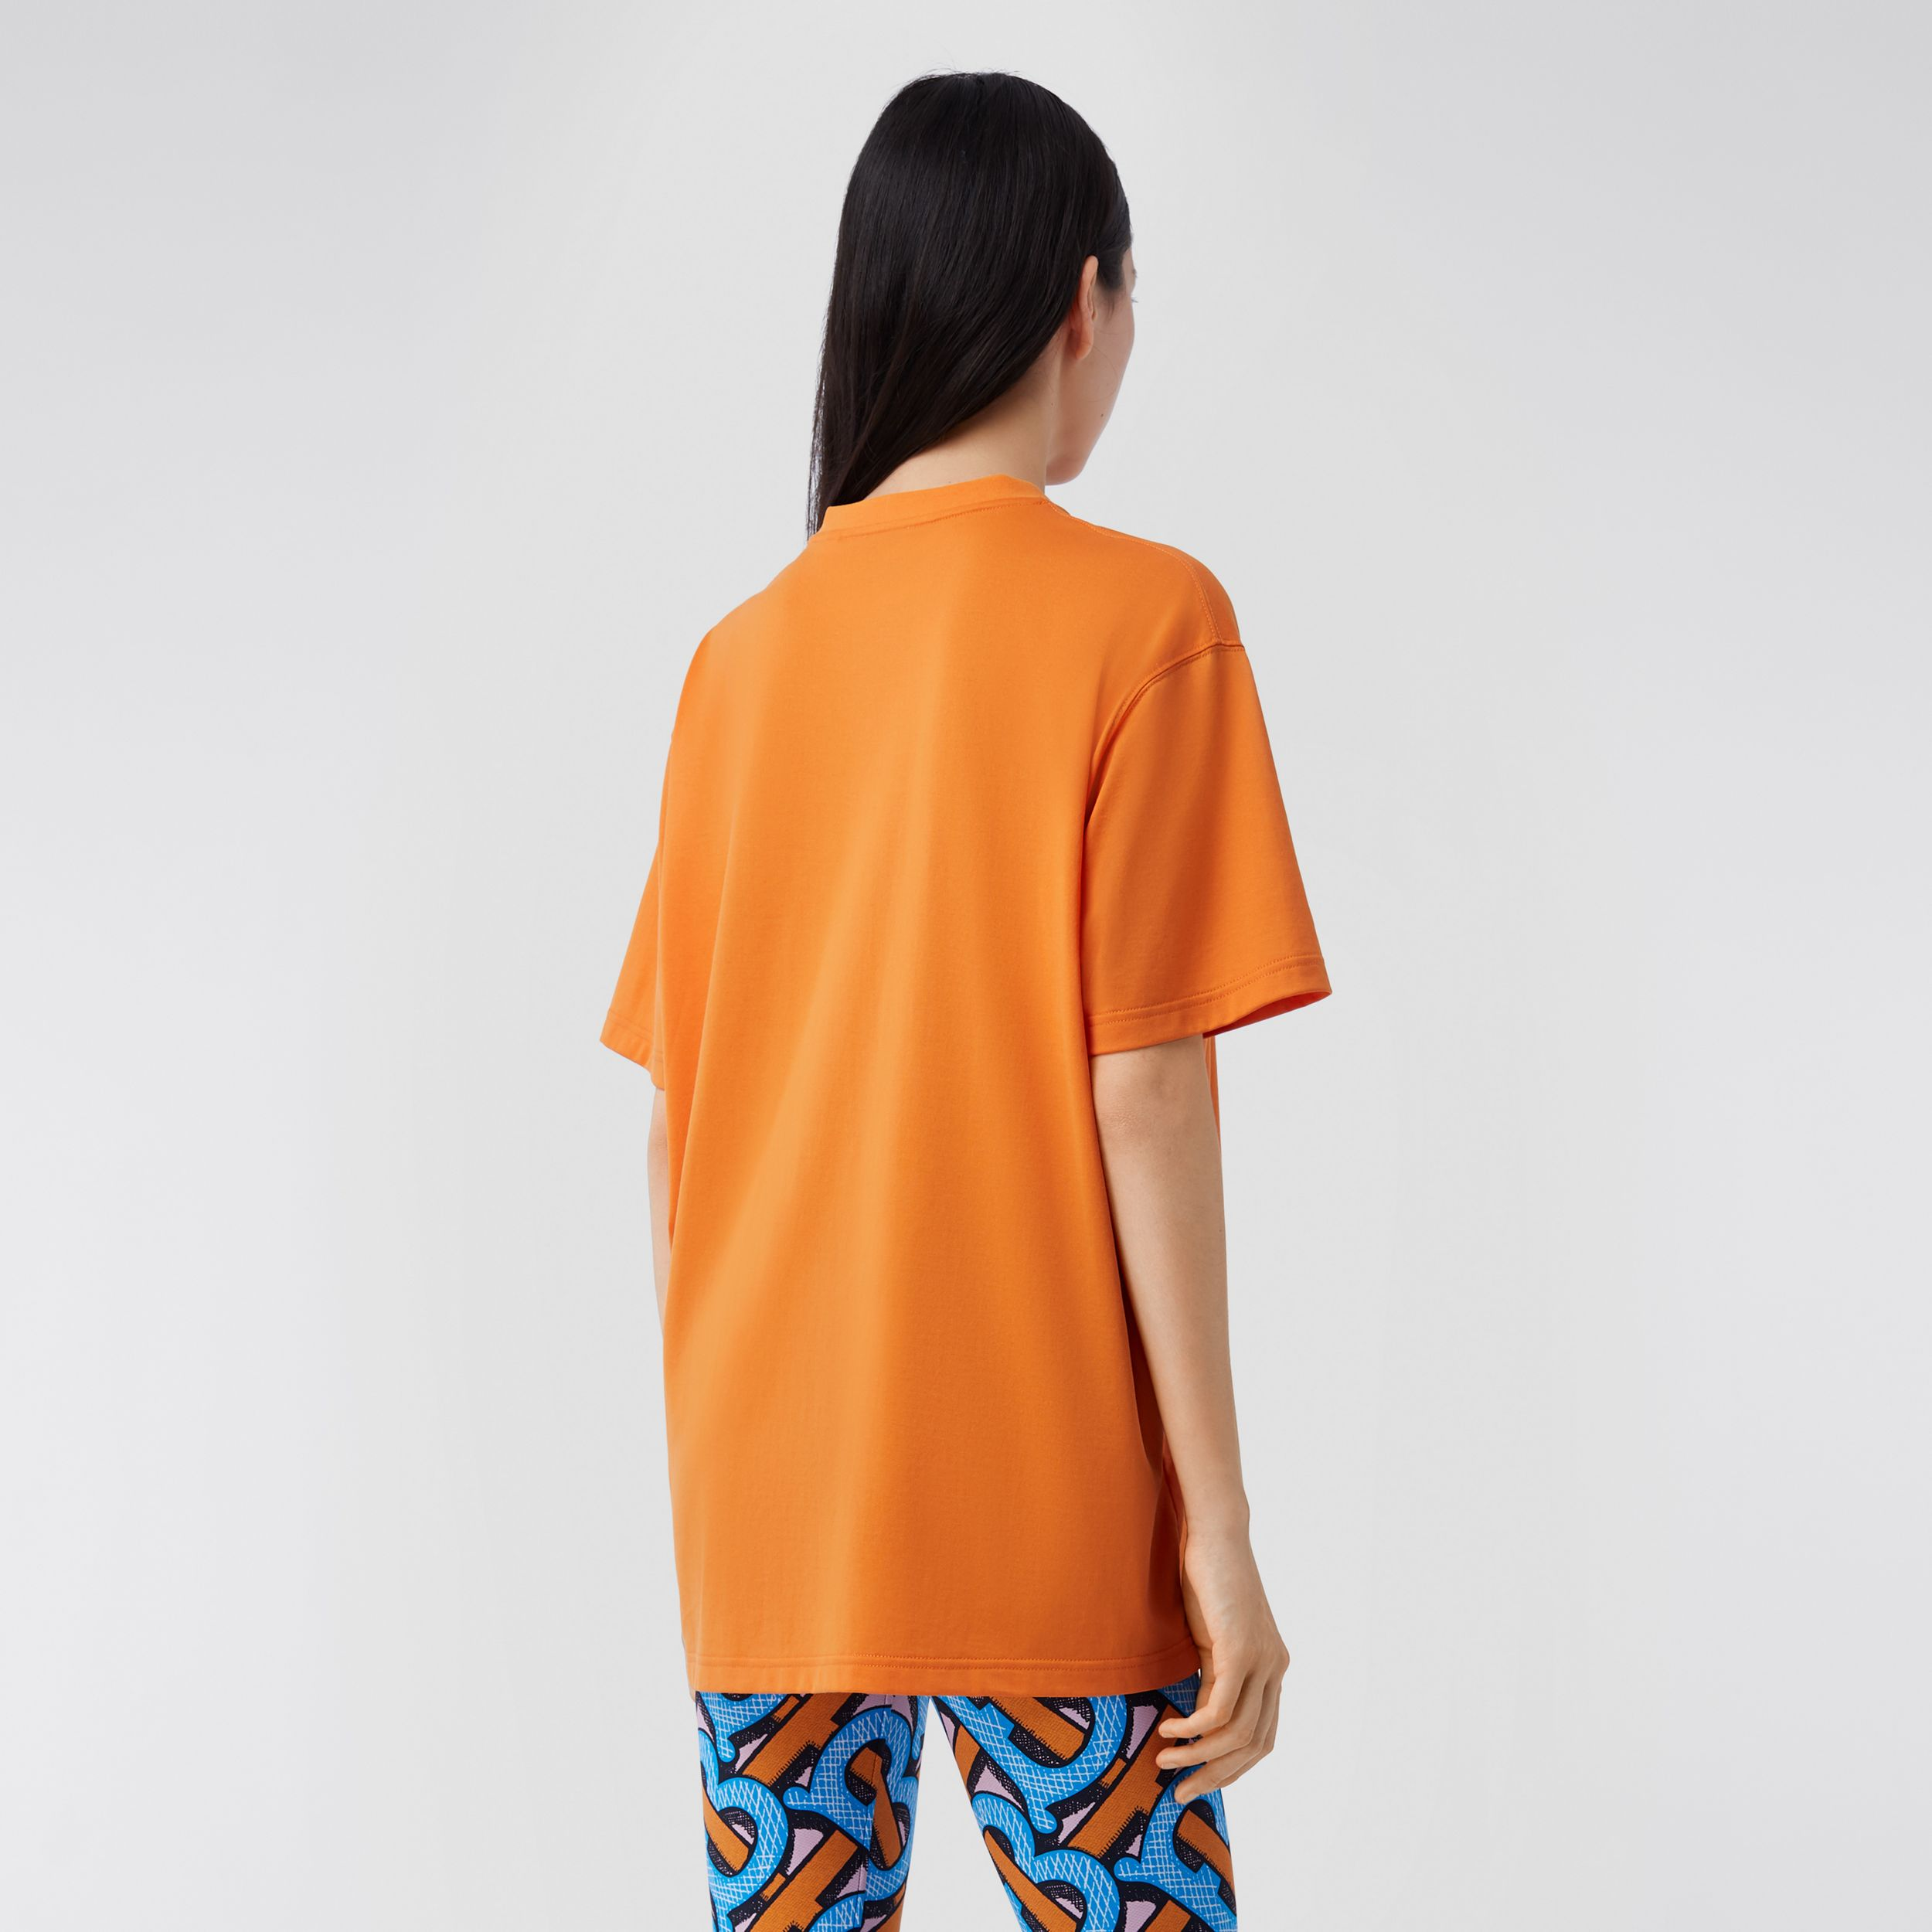 Monogram Motif Cotton T-shirt – Unisex in Bright Orange | Burberry United Kingdom - 3